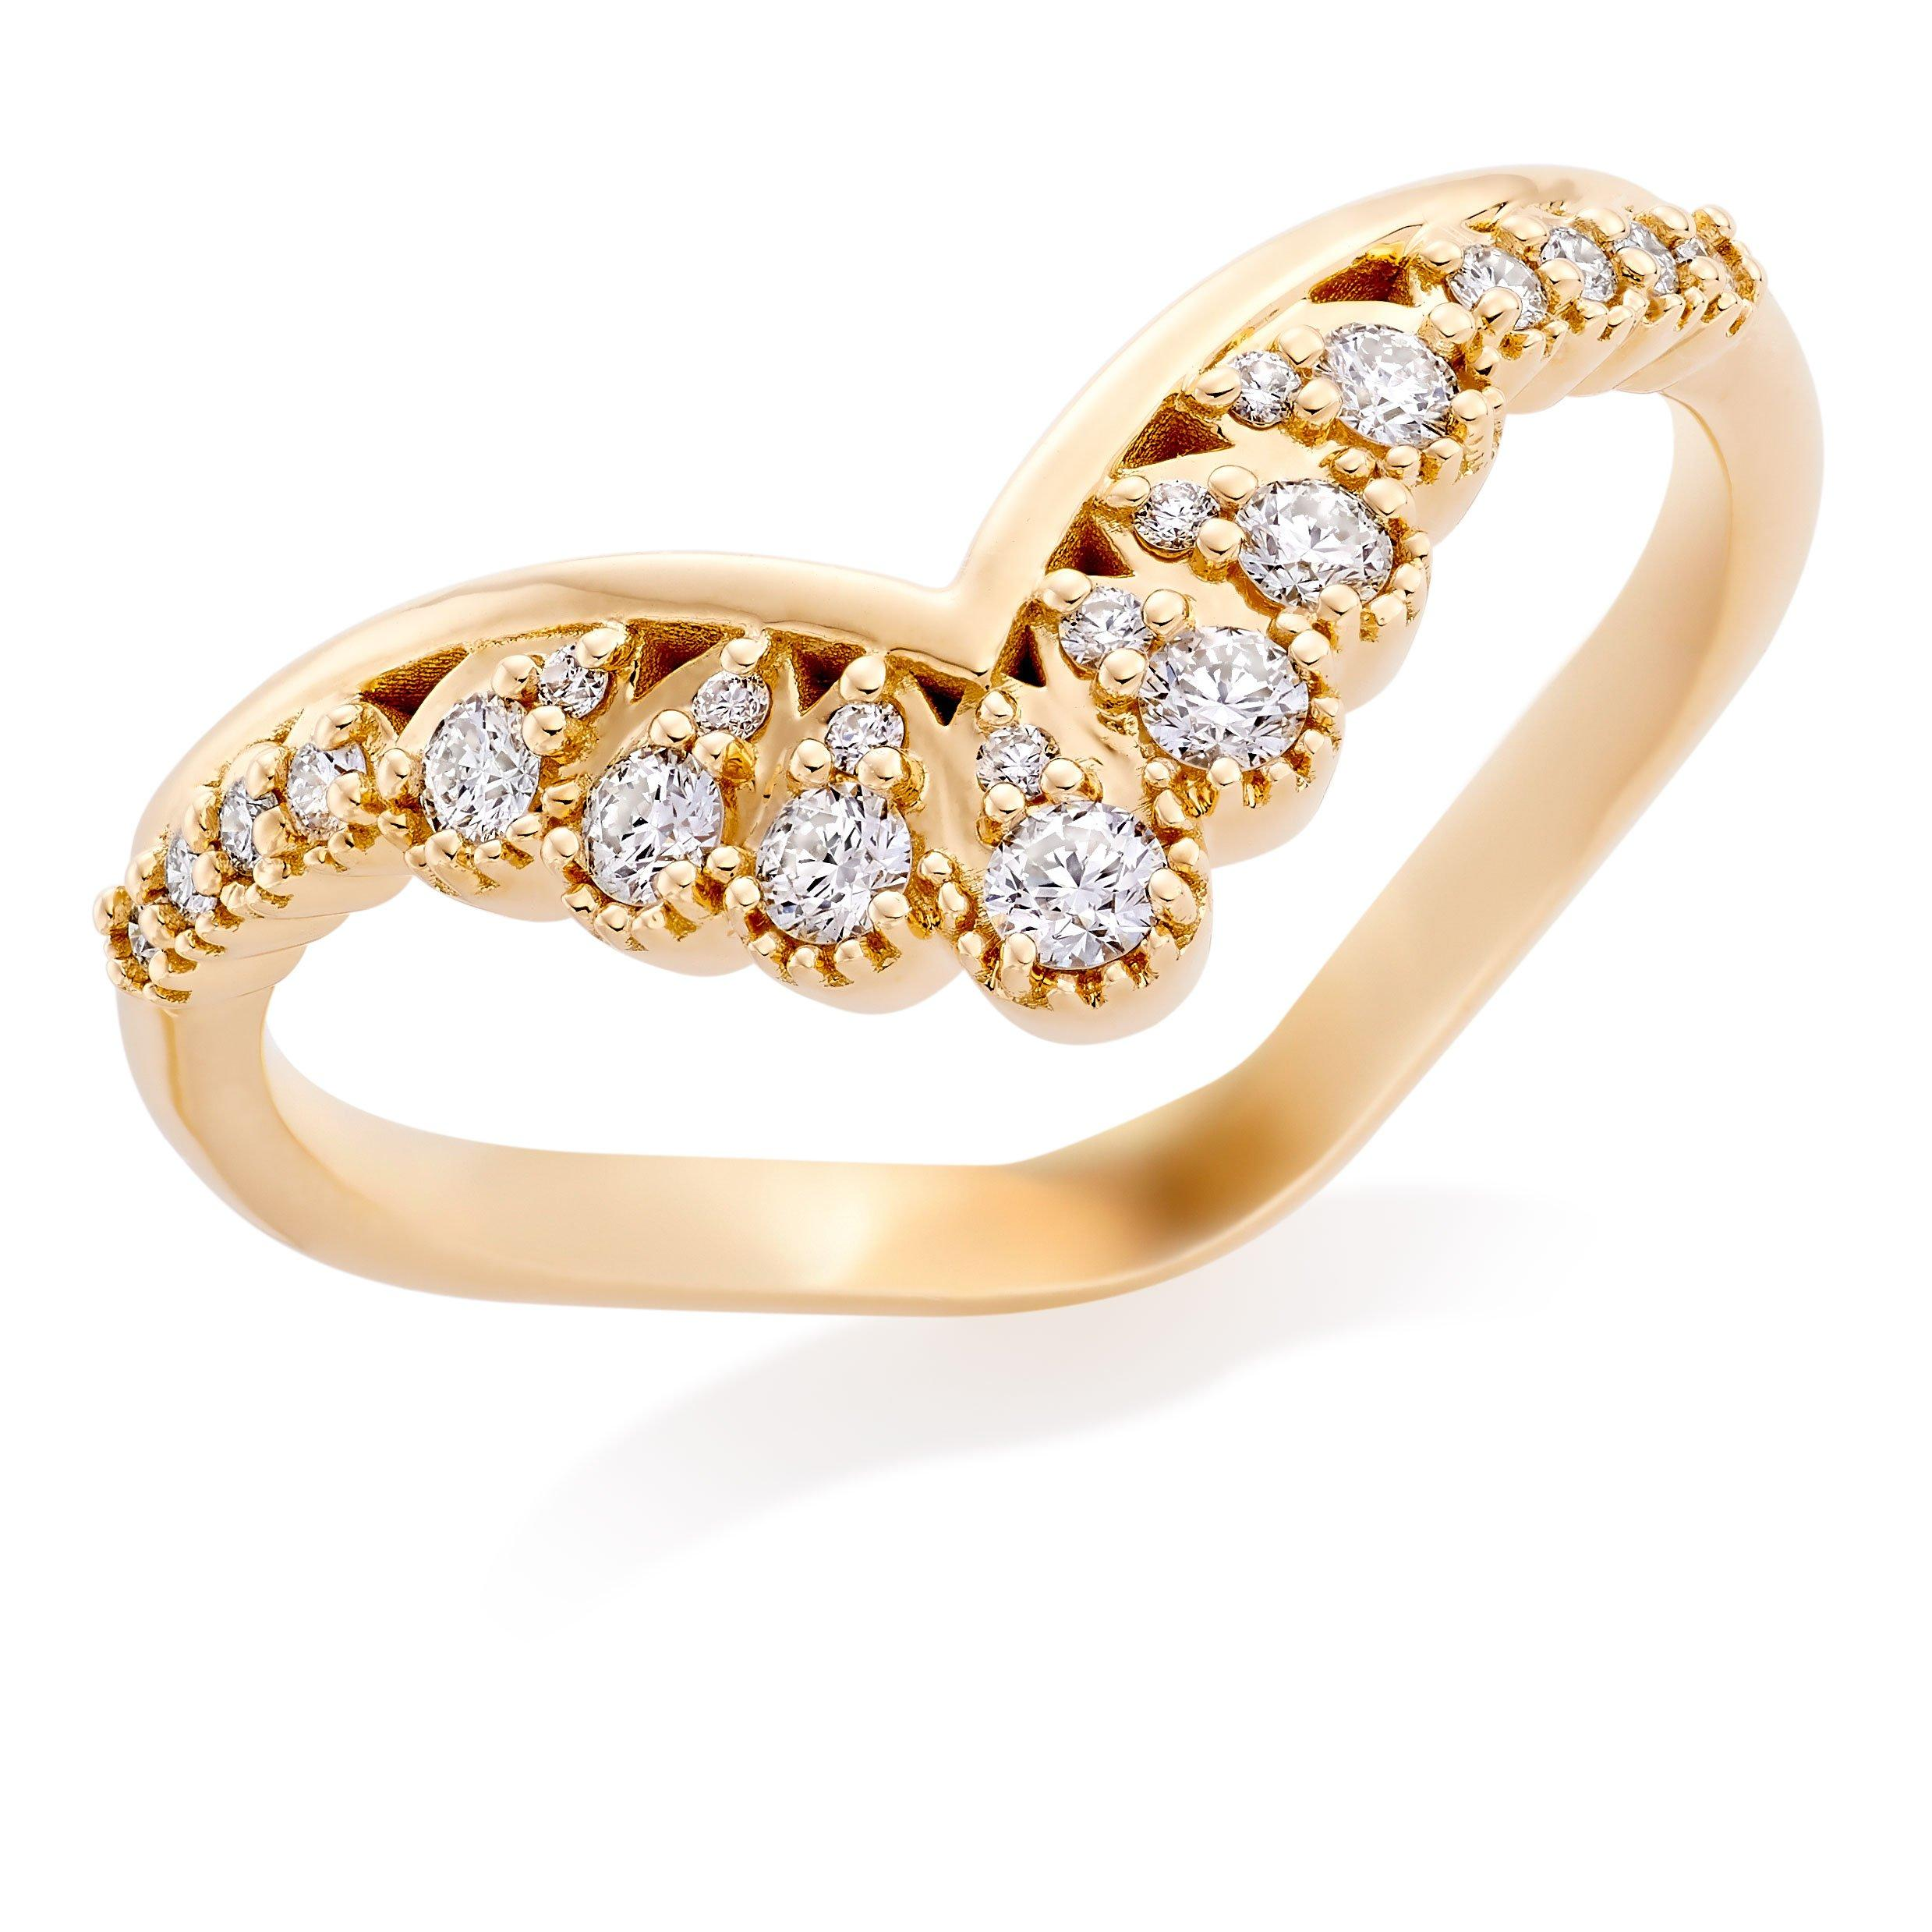 Hearts On Fire Hayley Paige Behati 18ct Gold Diamond Shaped Wedding Ring